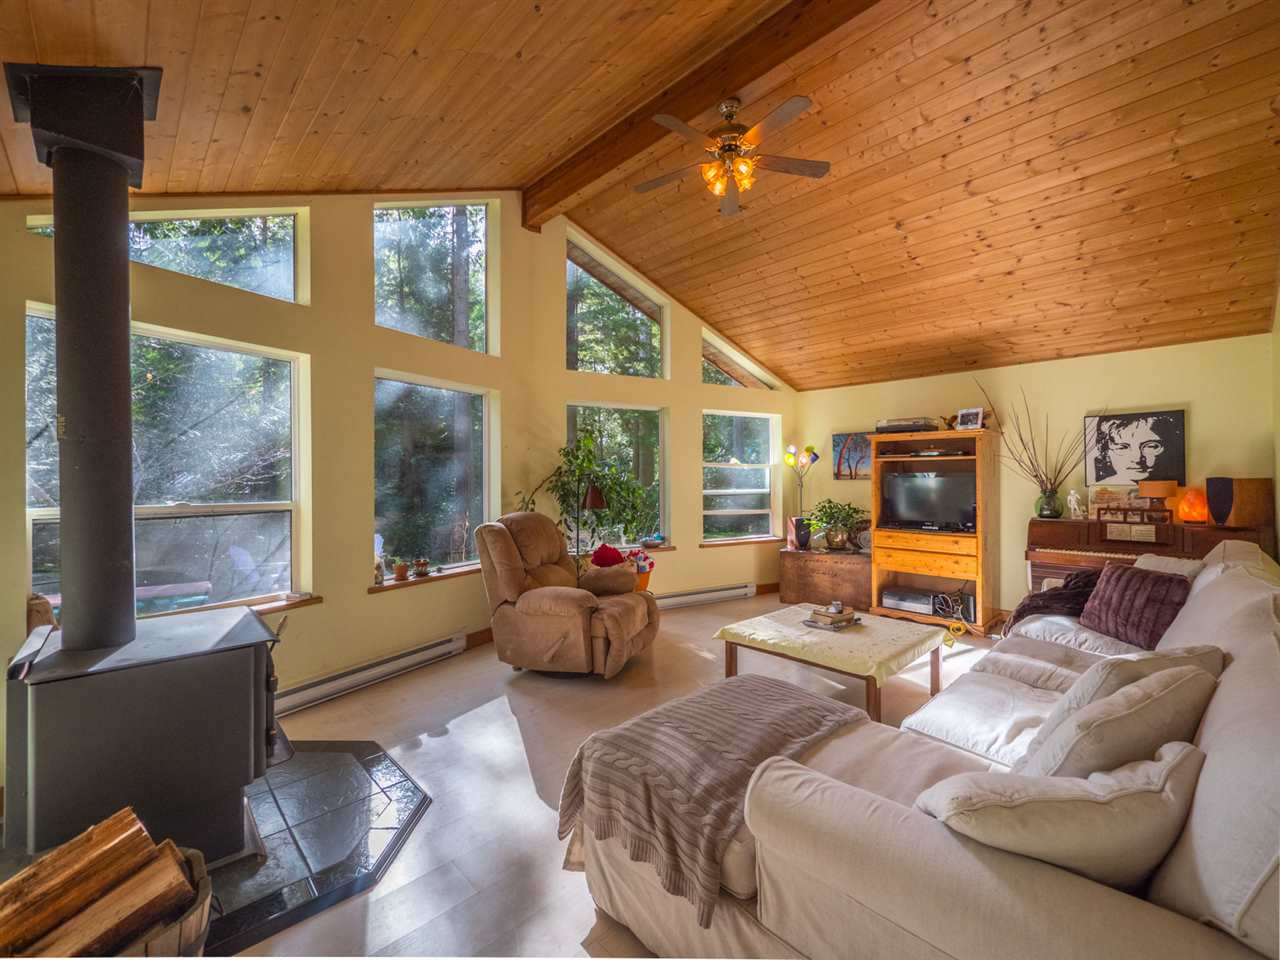 Photo 7: Photos: 1421 MARGARET Road: Roberts Creek House for sale (Sunshine Coast)  : MLS® # R2243186